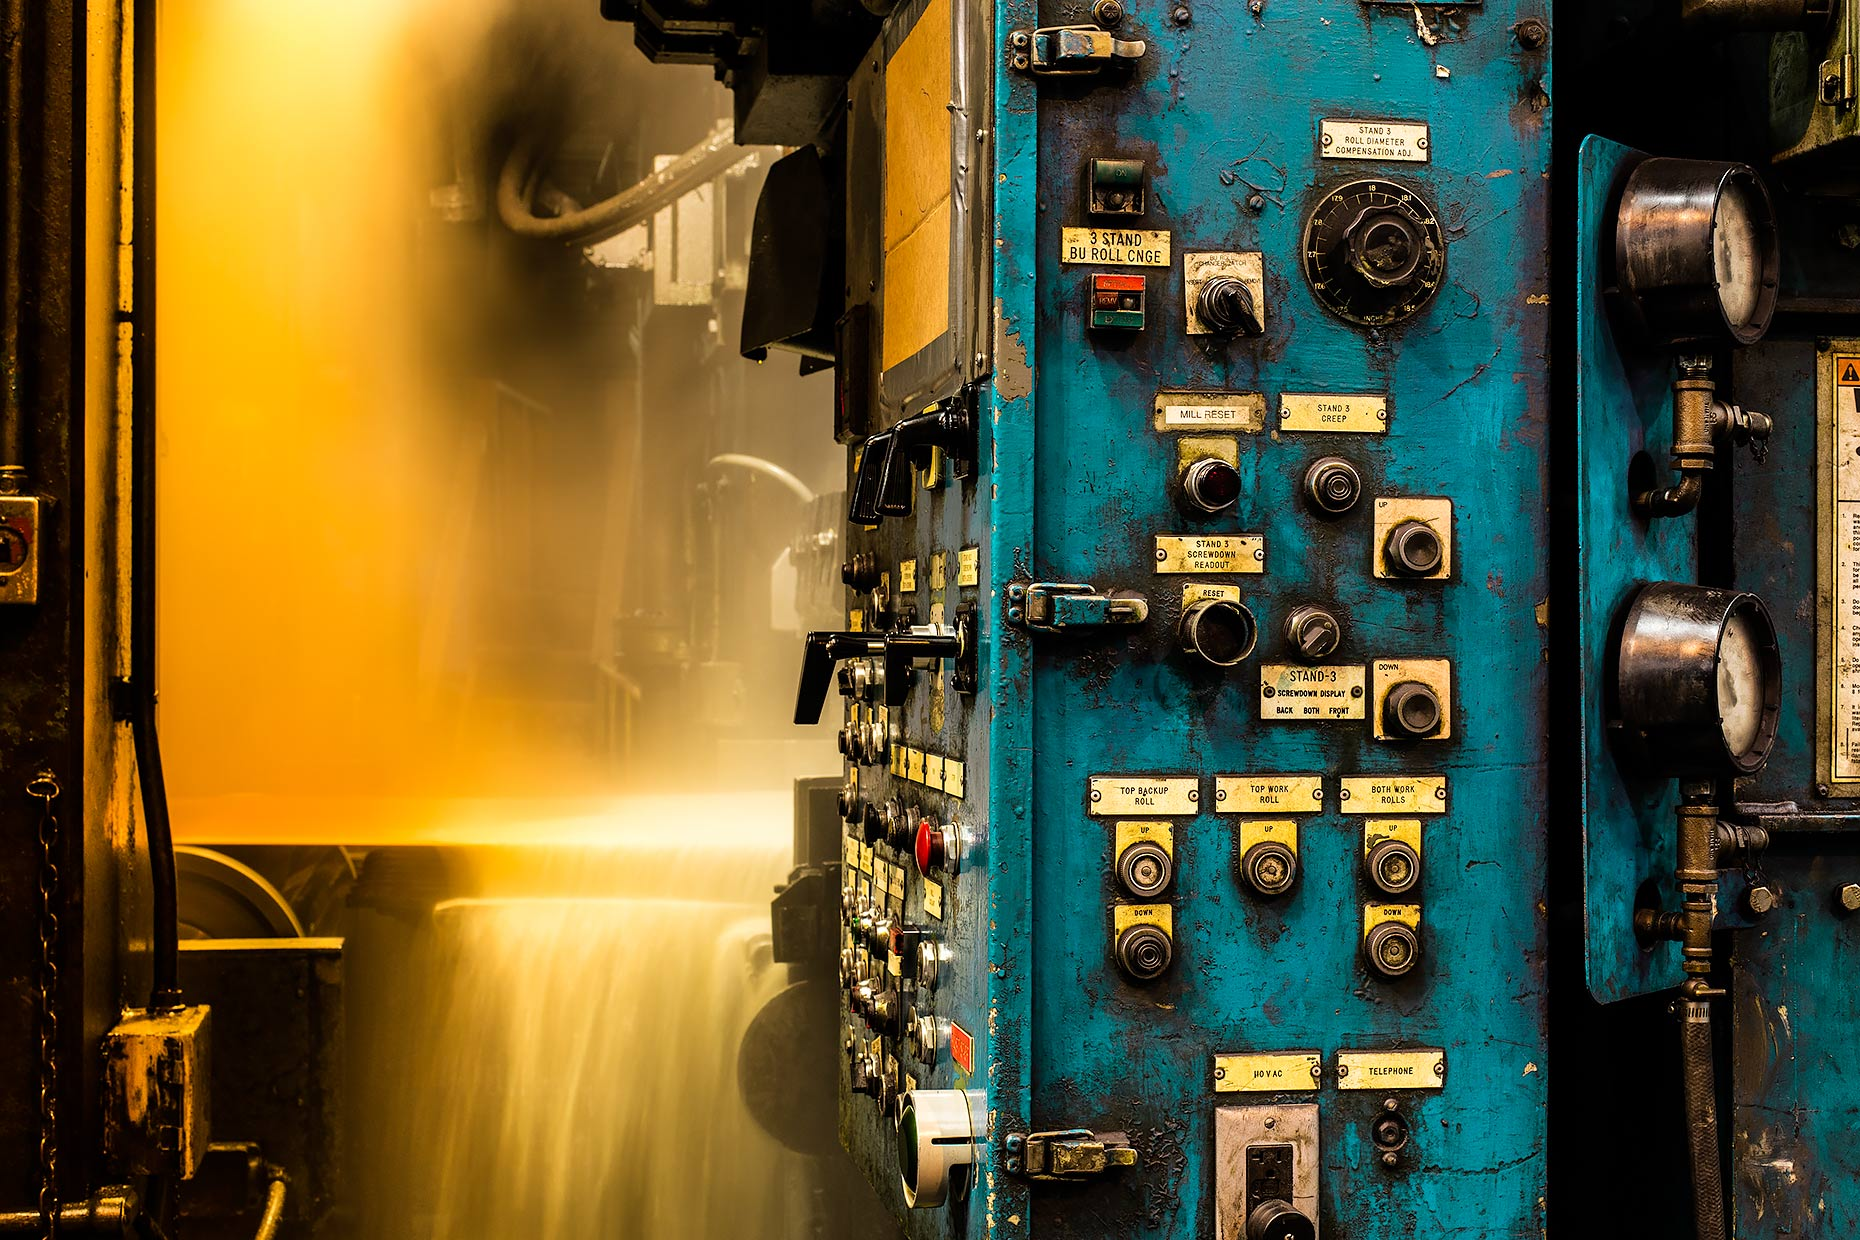 Control panel for hot rolling metal press |  Scott Gable industrial photographer